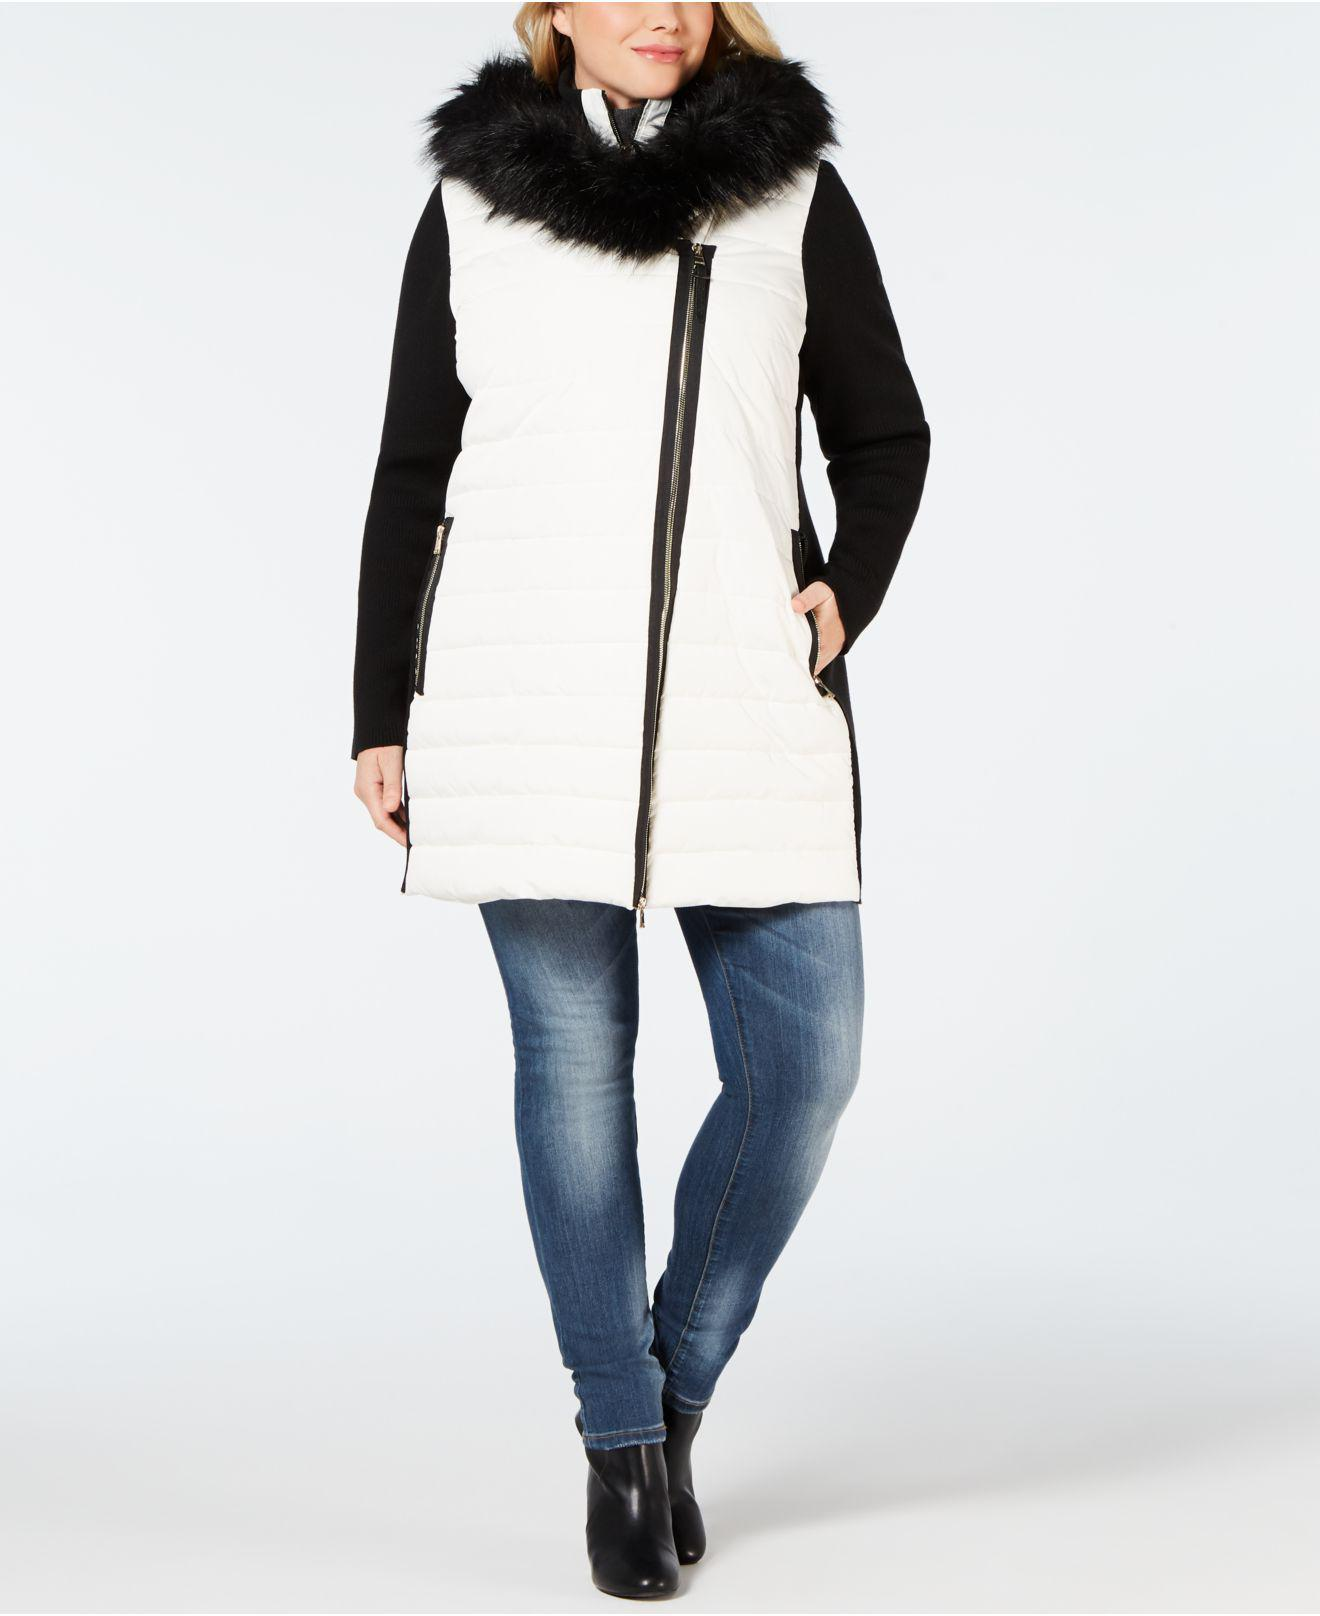 8fe1a1a9f8 Lyst - Calvin Klein Performance Plus Size Faux-fur Trimmed Hooded ...